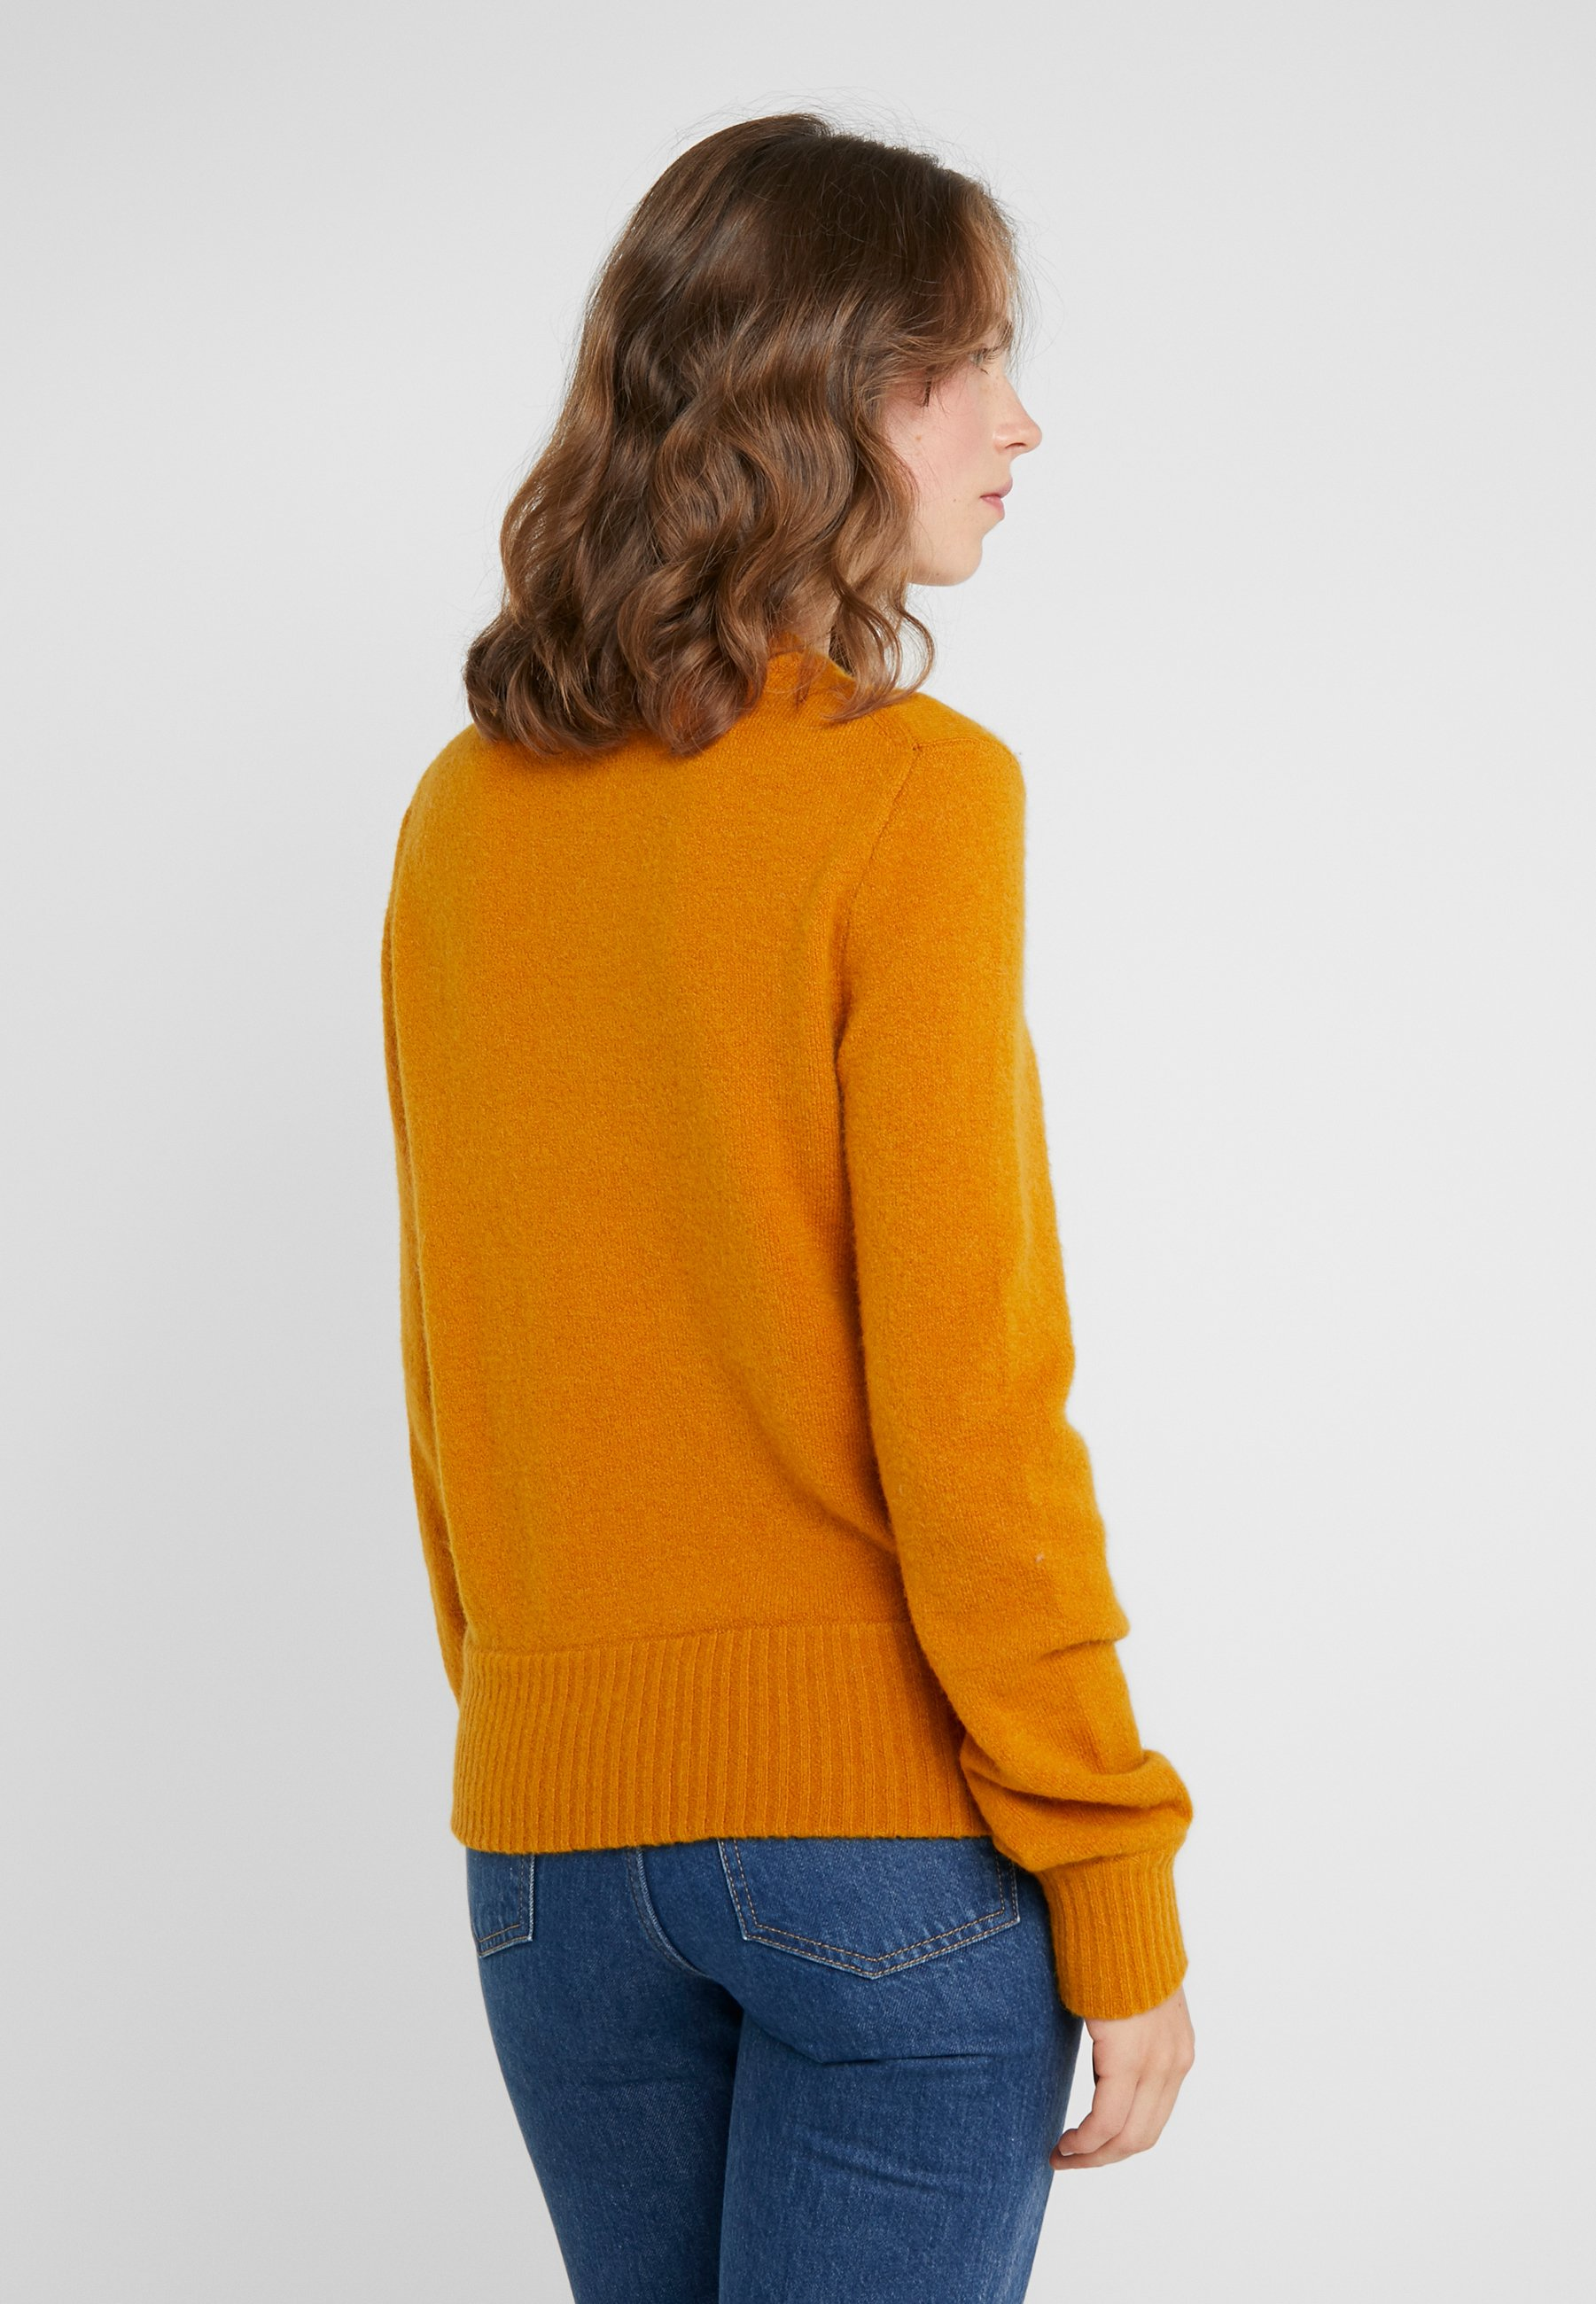 Supersoft Camel crew Heather Crew J ExclusivePullover Out Warm oQWdexBrCE